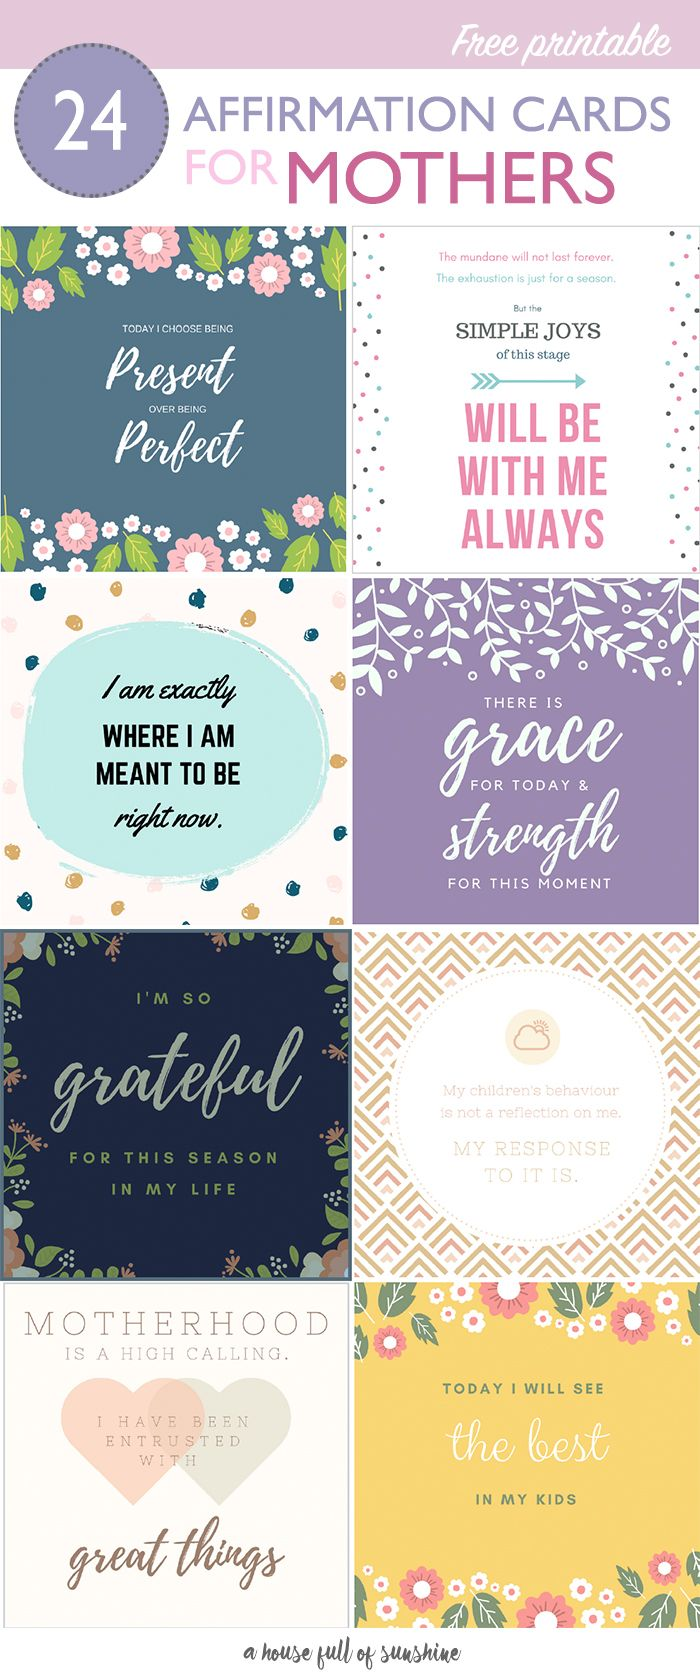 These FREE printable affirmation cards would make such a sweet and thoughtful #mothersday gift!!